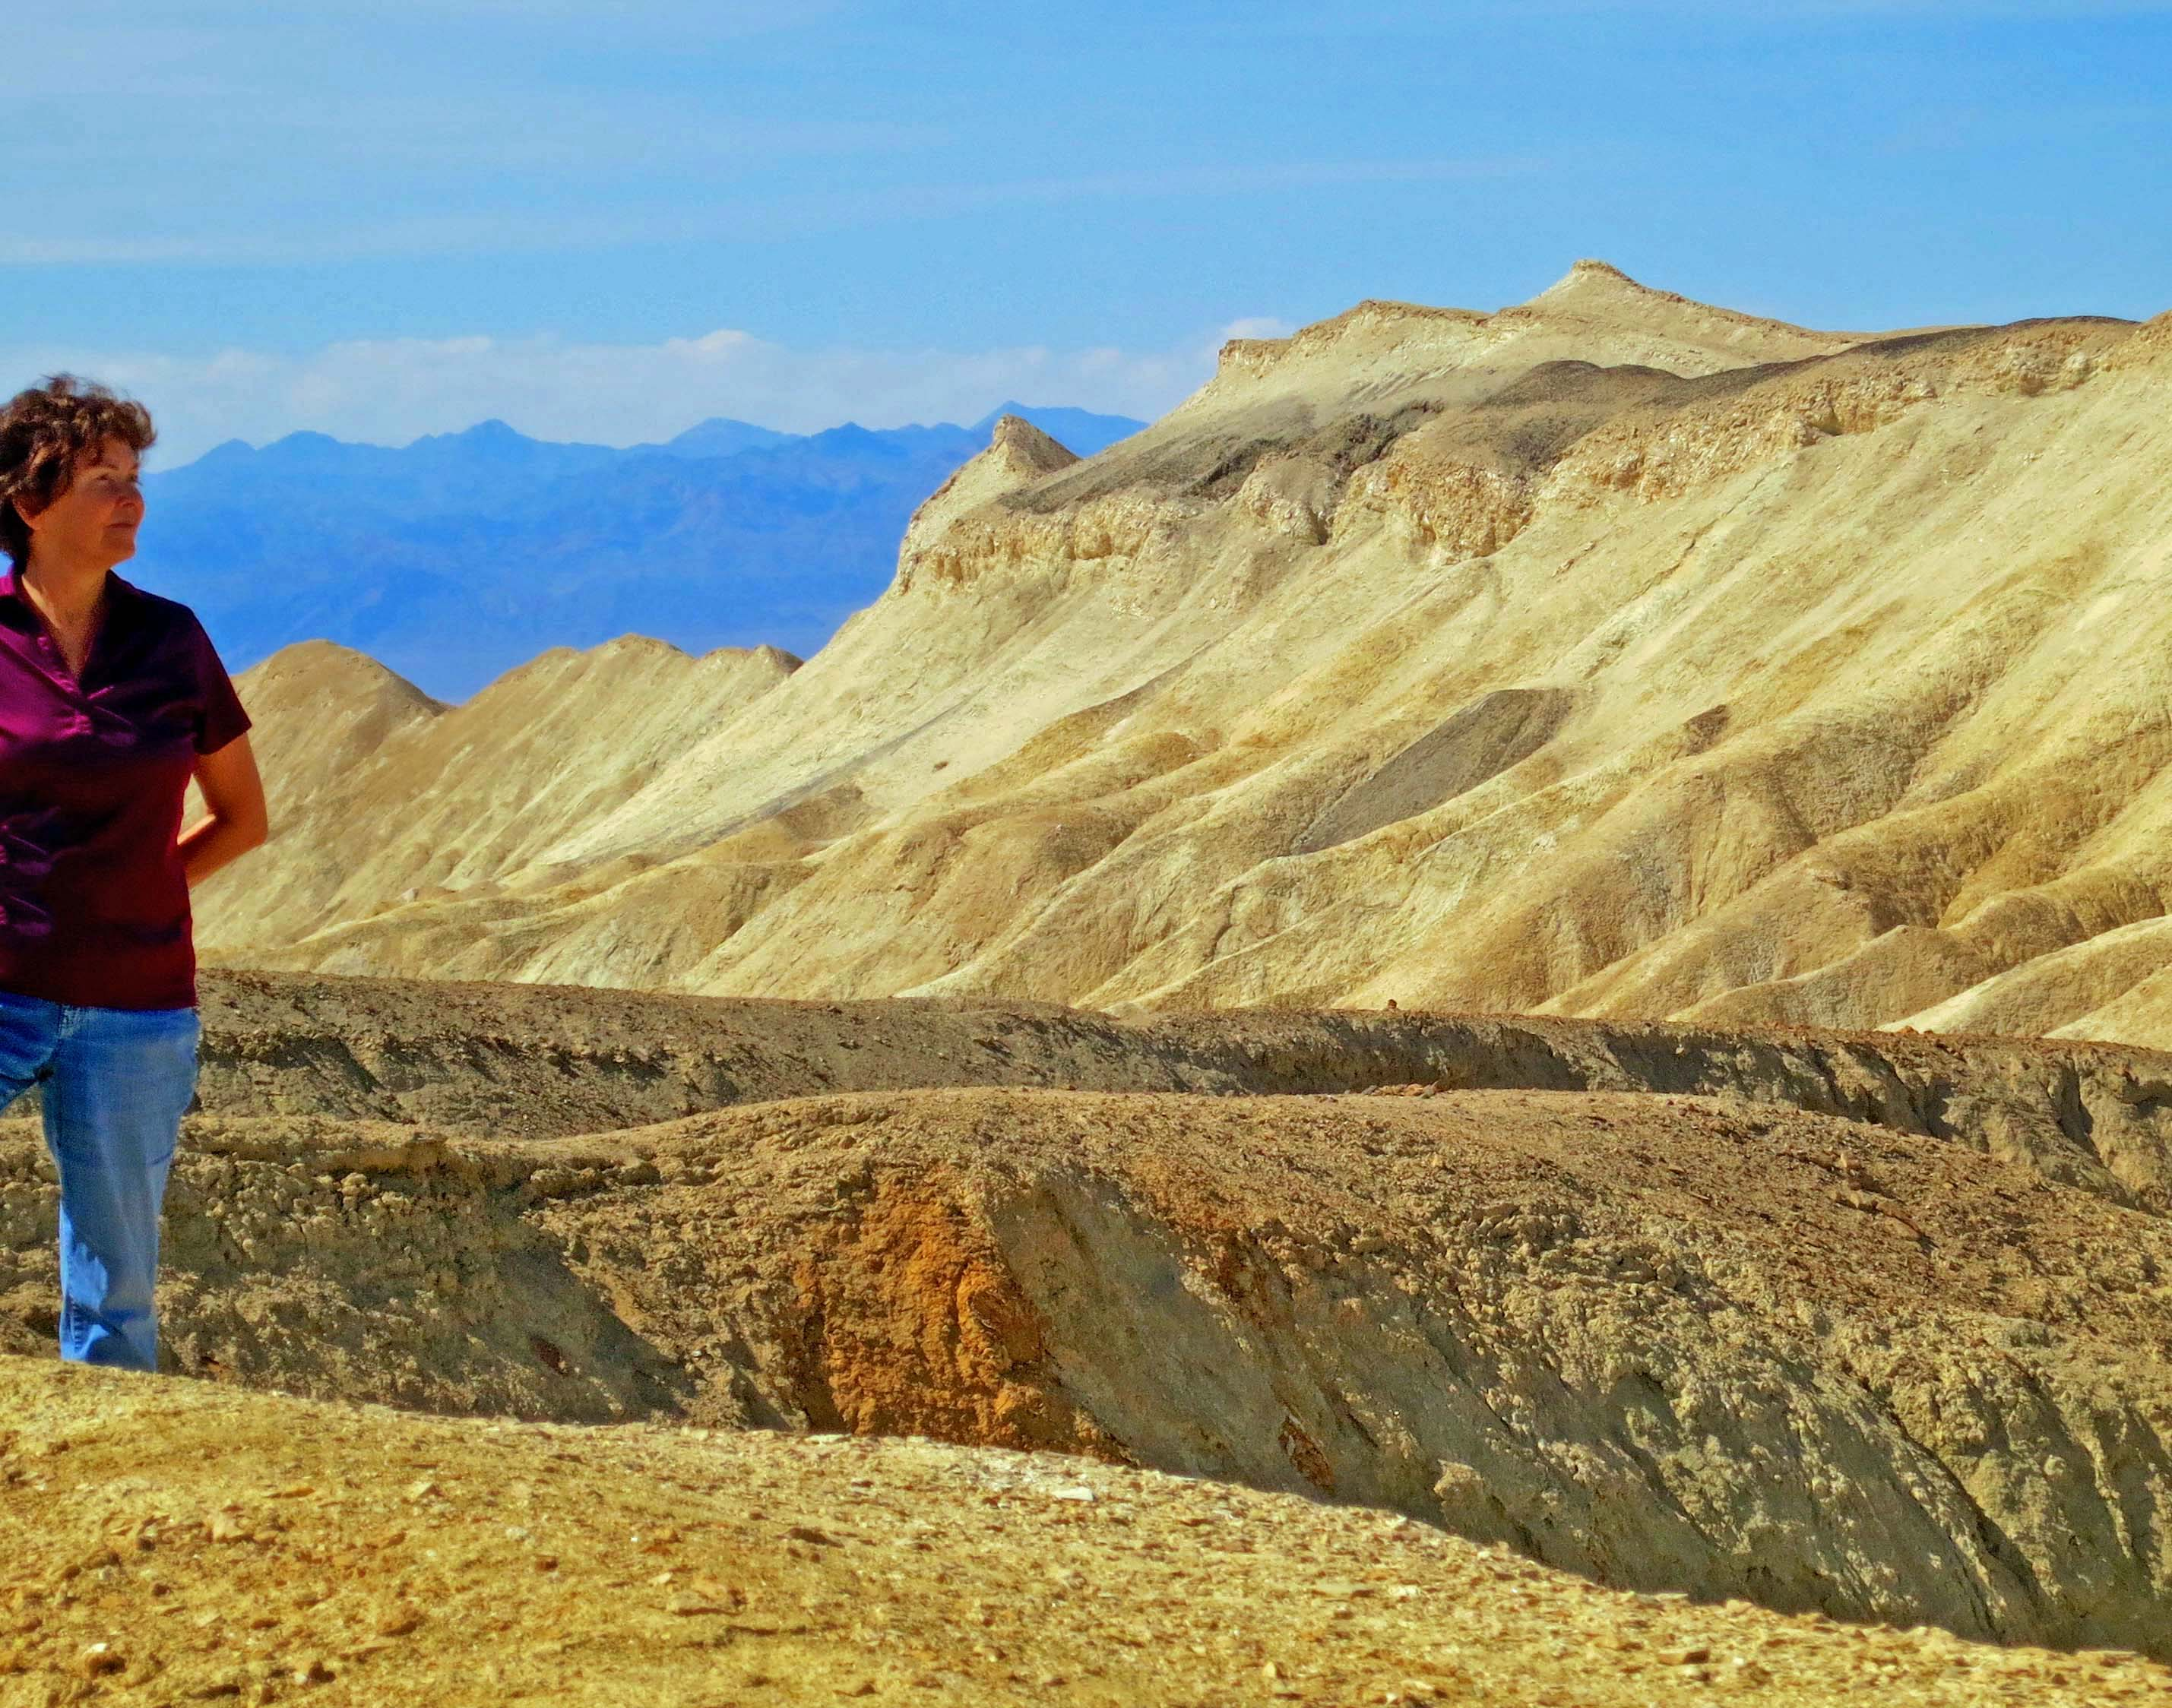 Peggy Mekemson checks out the view at Twenty Mule Team Canyon in Death Valley.